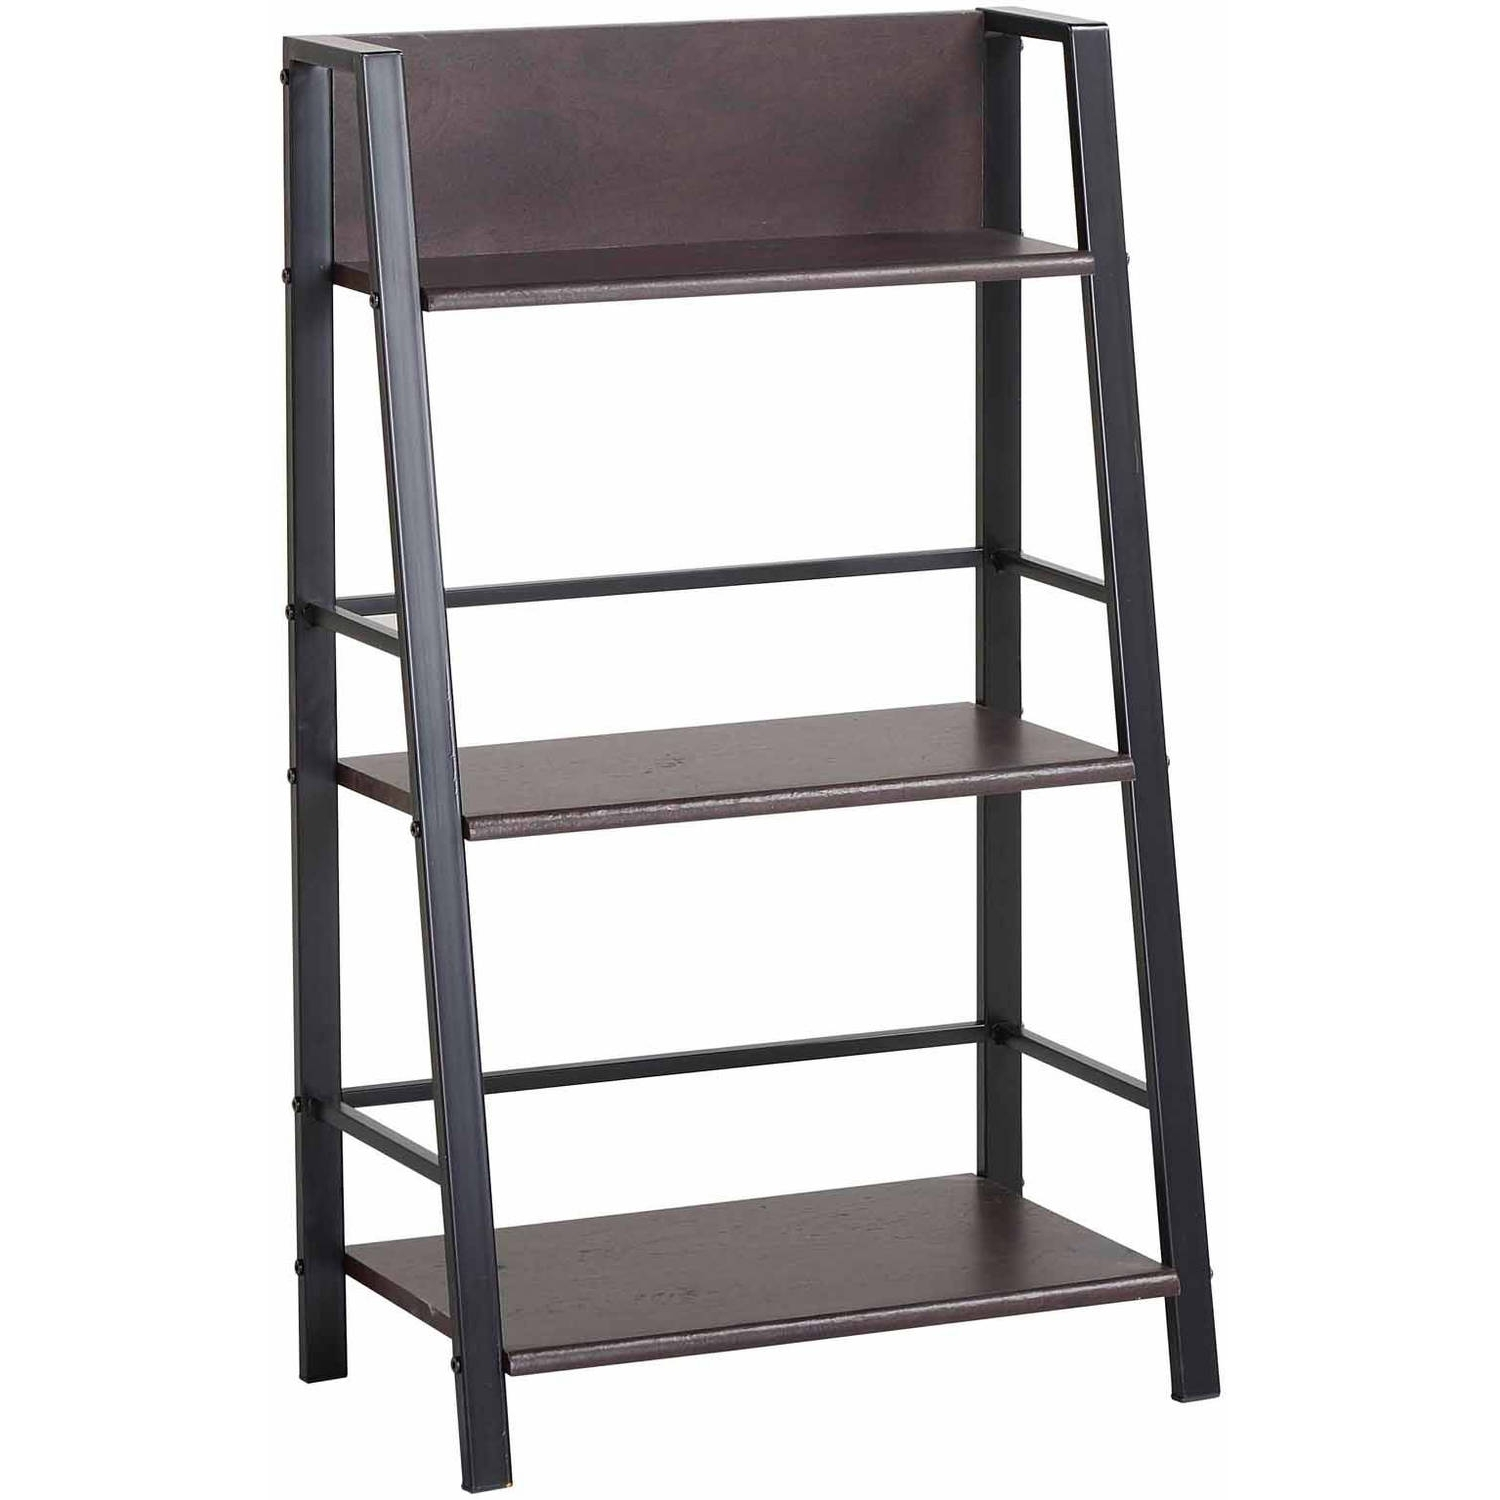 Famous Mainstays 3 Shelf Bookcase, Multiple Finishes – Walmart Pertaining To 3 Shelf Bookcases Walmart (View 4 of 15)